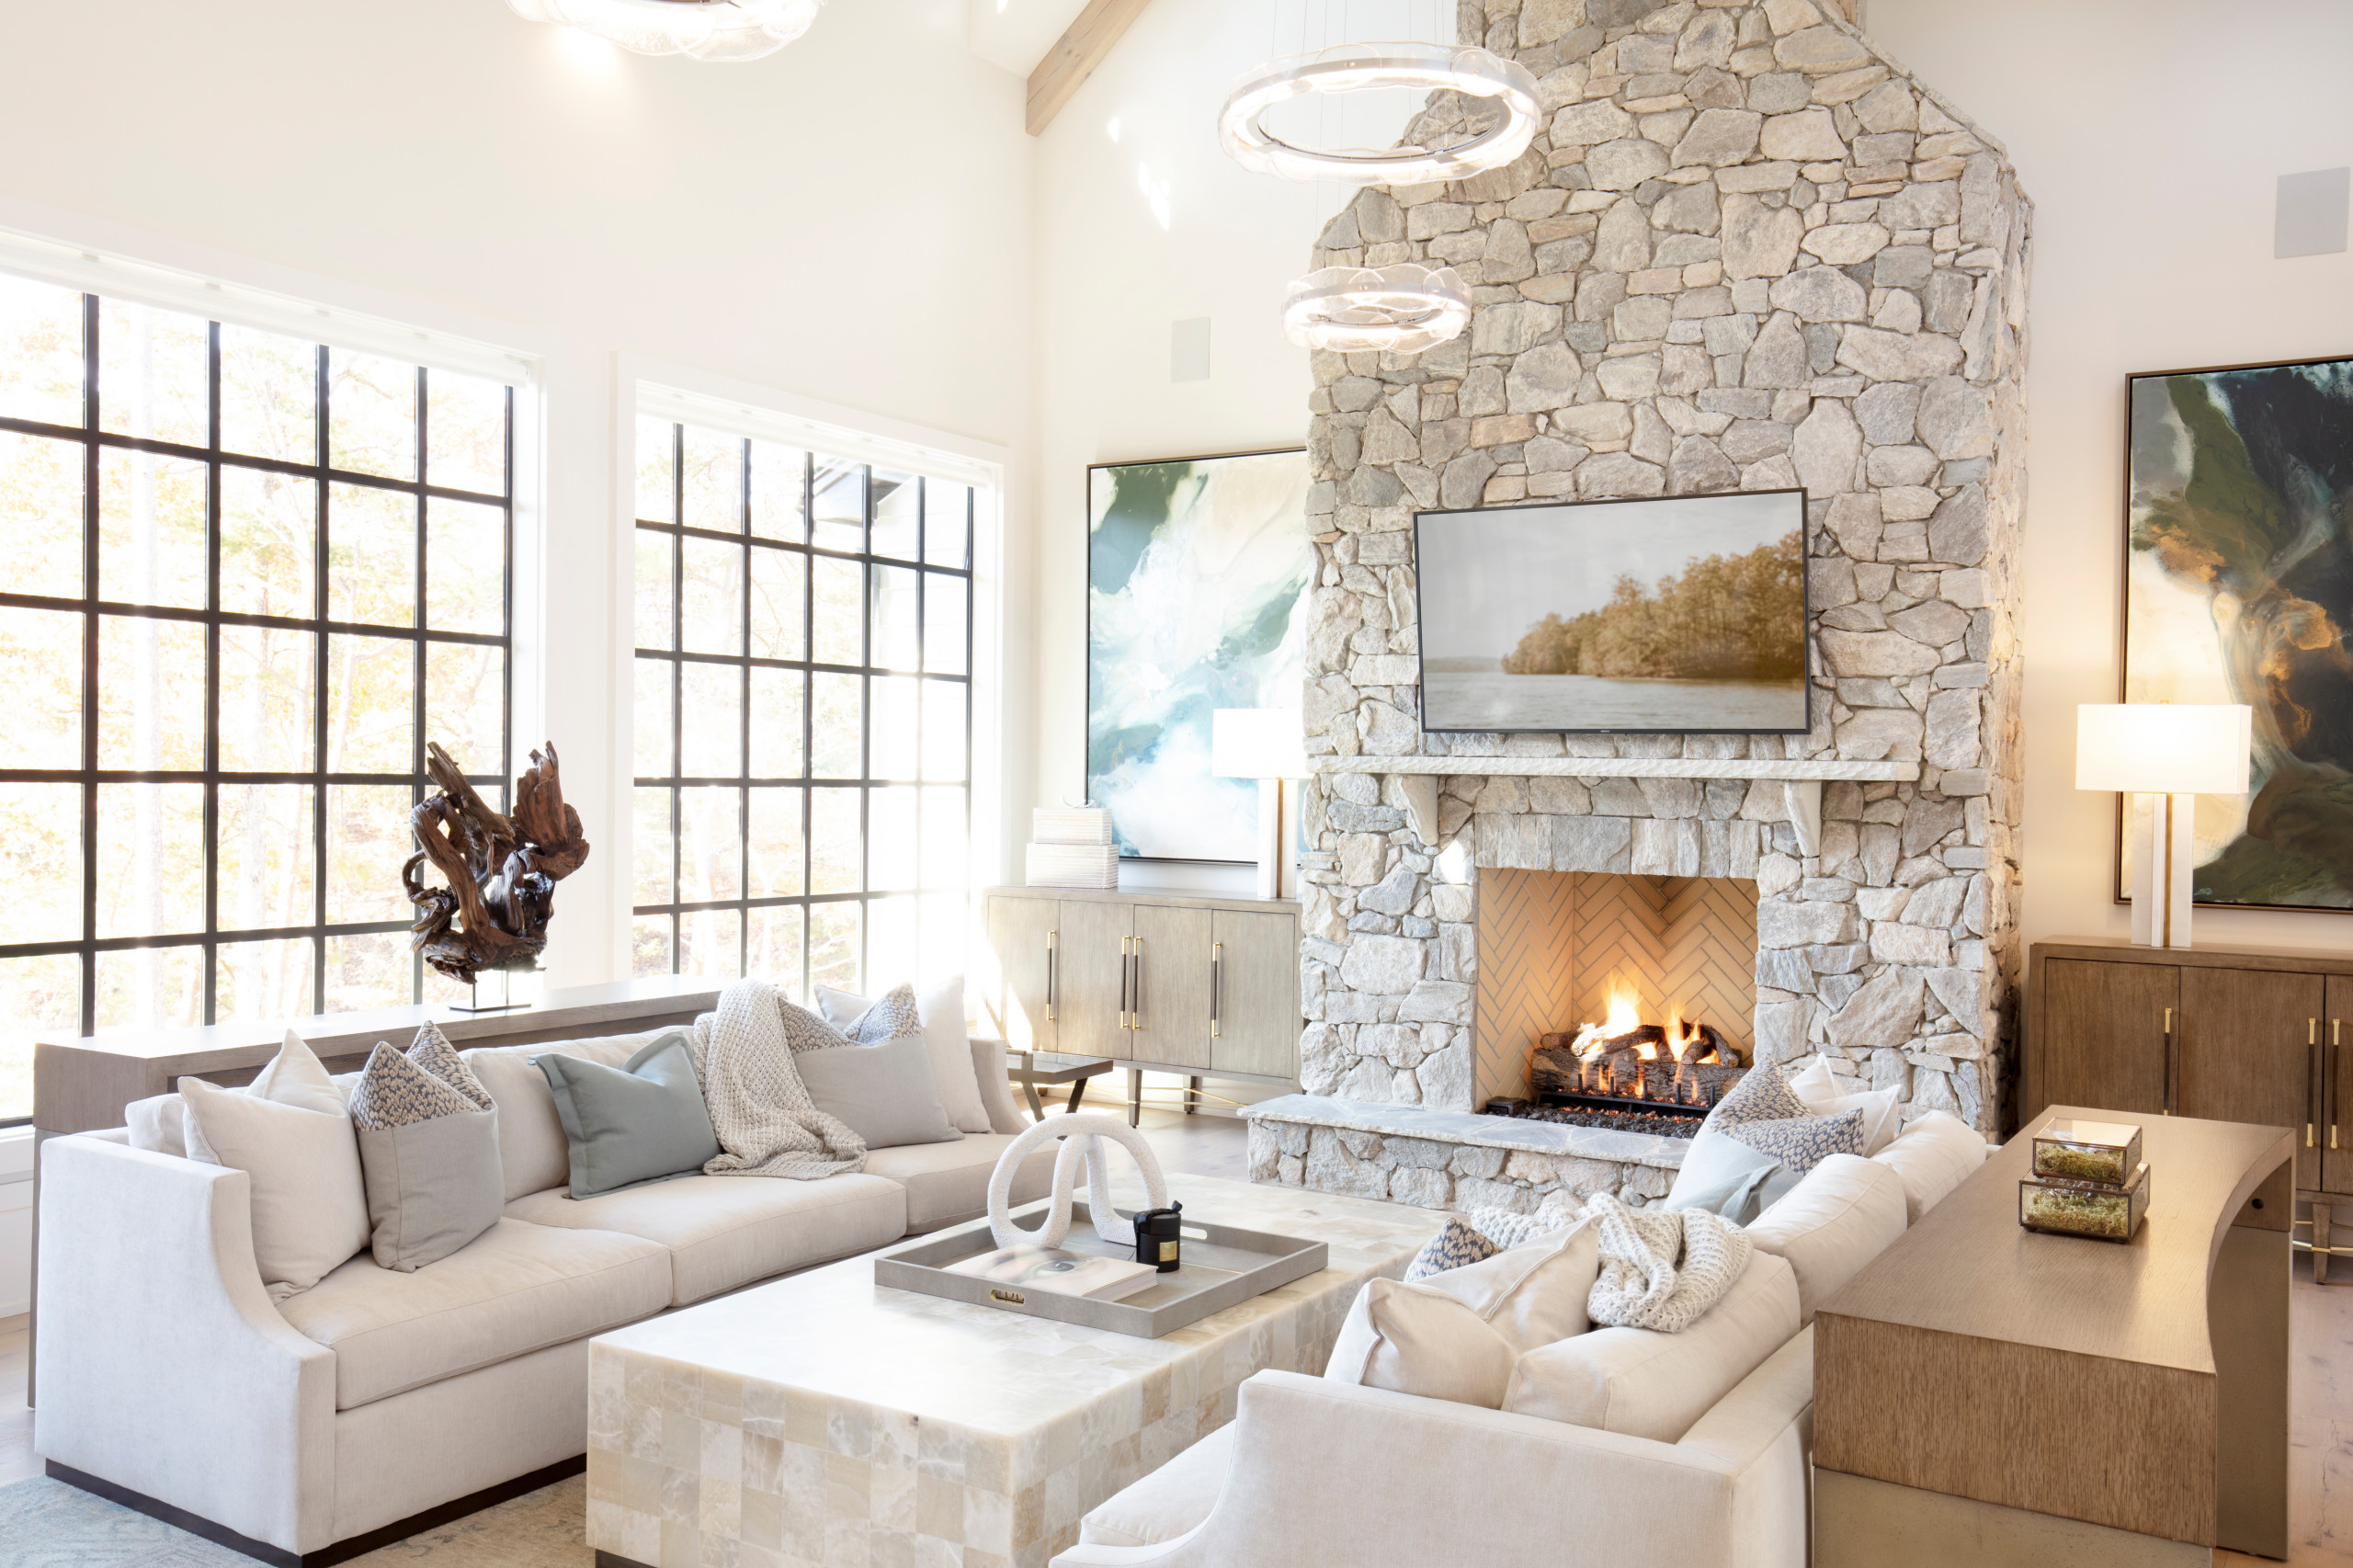 75 Beautiful Family Room With A Stone Fireplace Pictures Ideas May 2021 Houzz